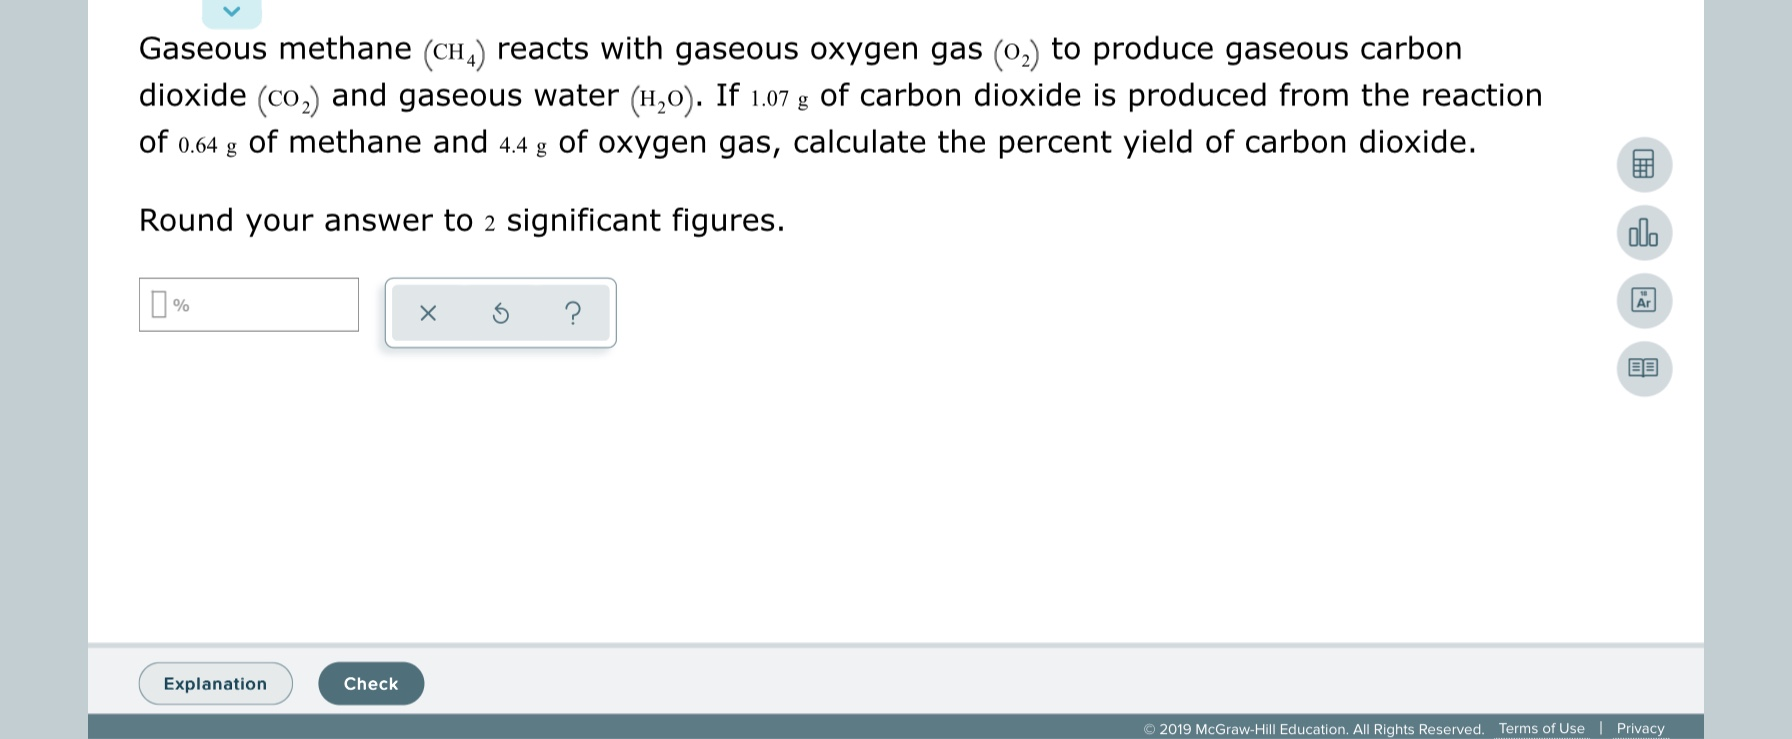 Gaseous methane (CH,) reacts with gaseous oxygen gas (0,) to produce gaseous carbon dioxide (co,) and gaseous water (H,0). If 1.07 g of carbon dioxide is produced from the reaction of 0.64 g of methane and 4.4 g of oxygen gas, calculate the percent yield of carbon dioxide. Round your answer to 2 significant figures. alo Explanation Check © 2019 McGraw-Hill Education. All Rights Reserved. Terms of Use   Privacy